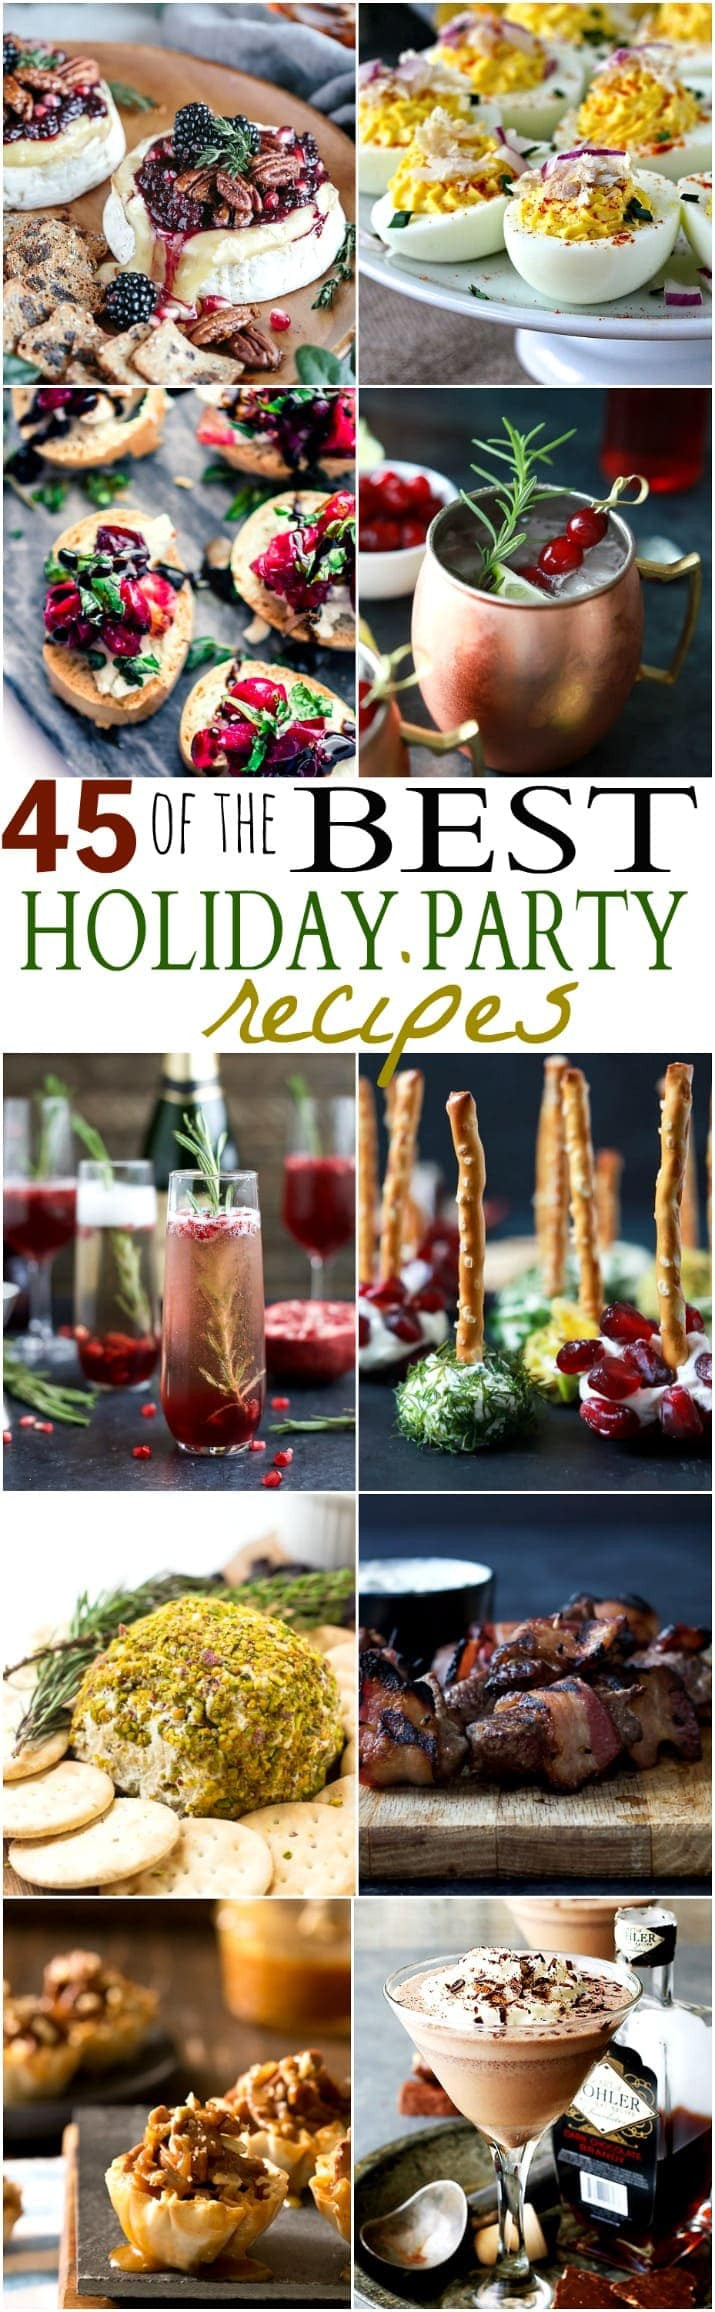 Stop And Shop Christmas Dinners  45 of the BEST Holiday Party Recipes